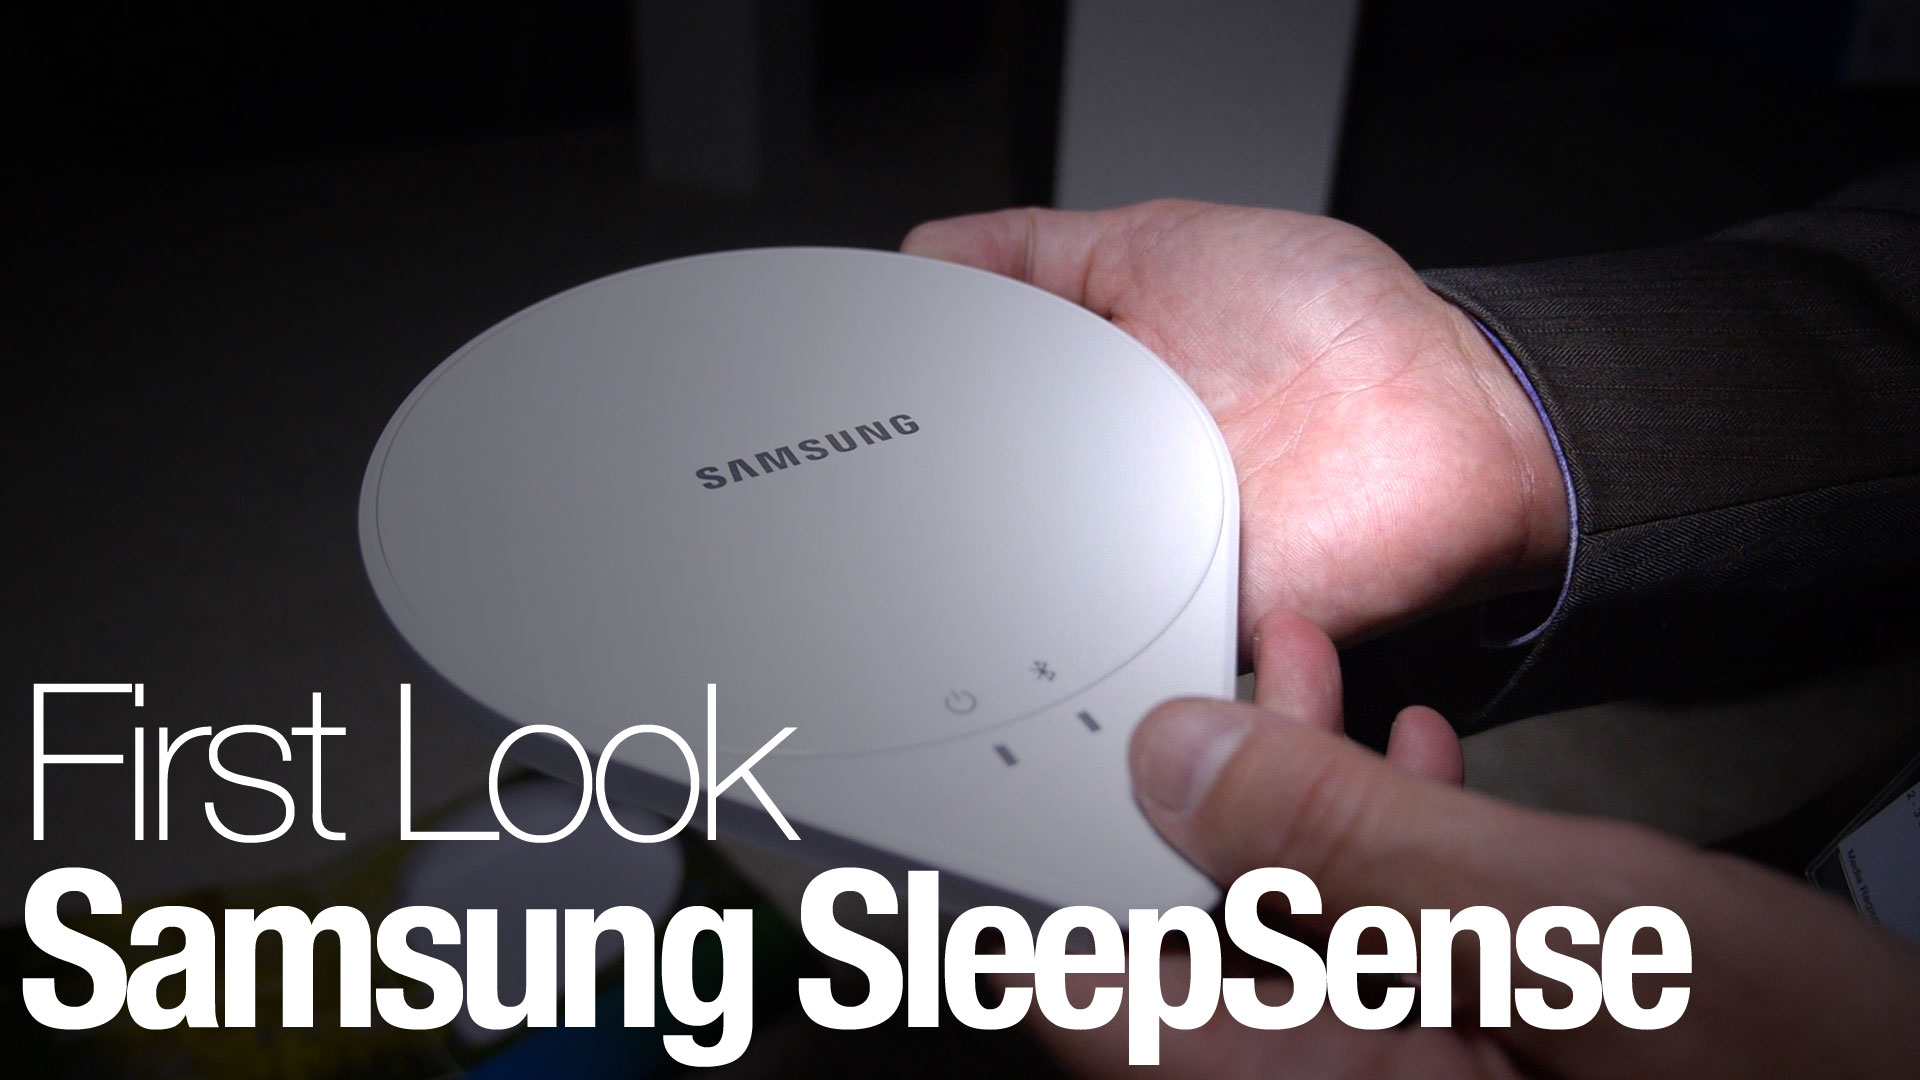 The new Samsung SleepSense can monitor your sleeping habits, and communicate with connected appliances.